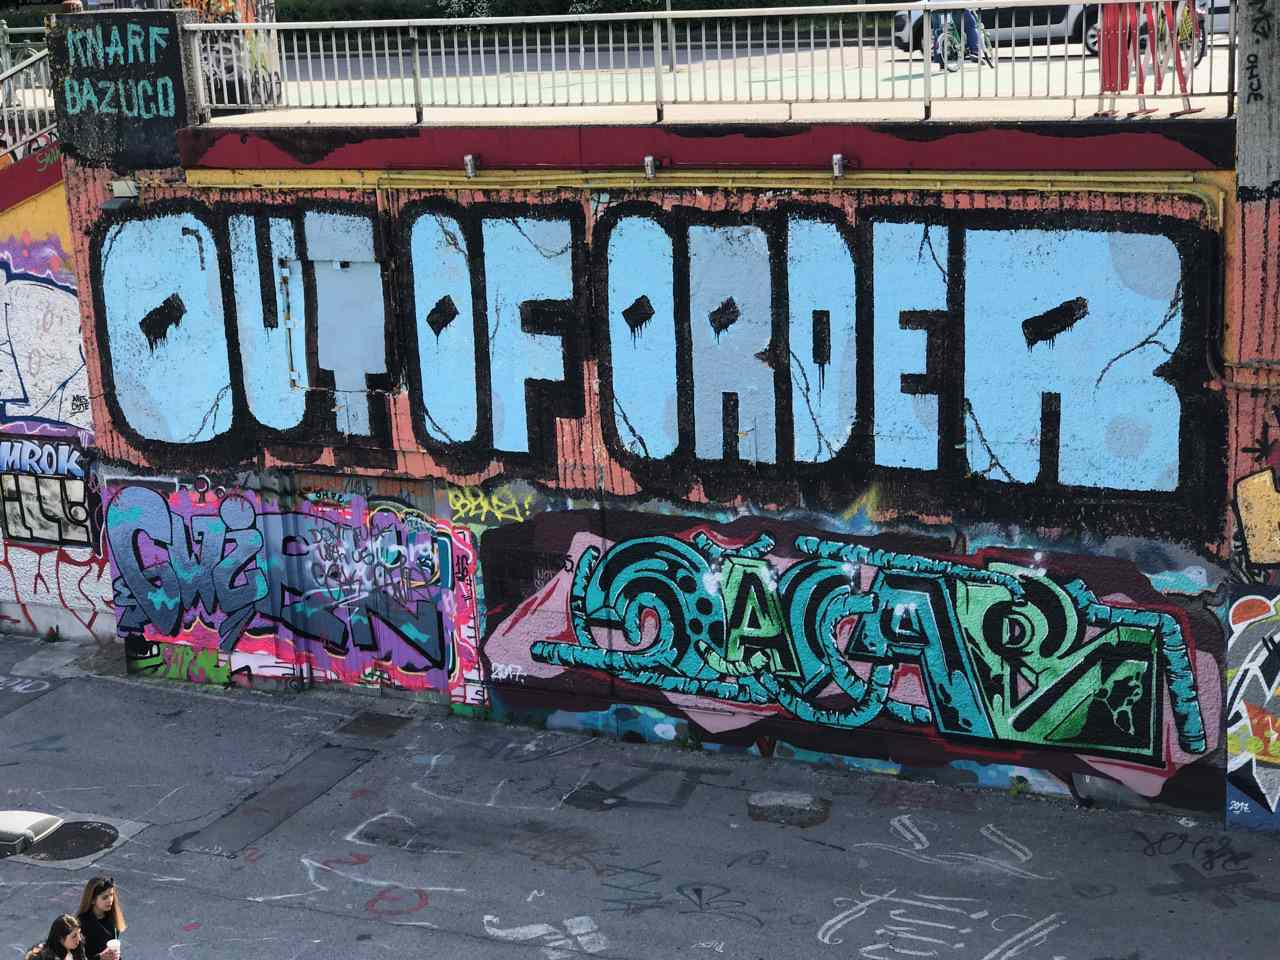 graffiti in Vienna with the words